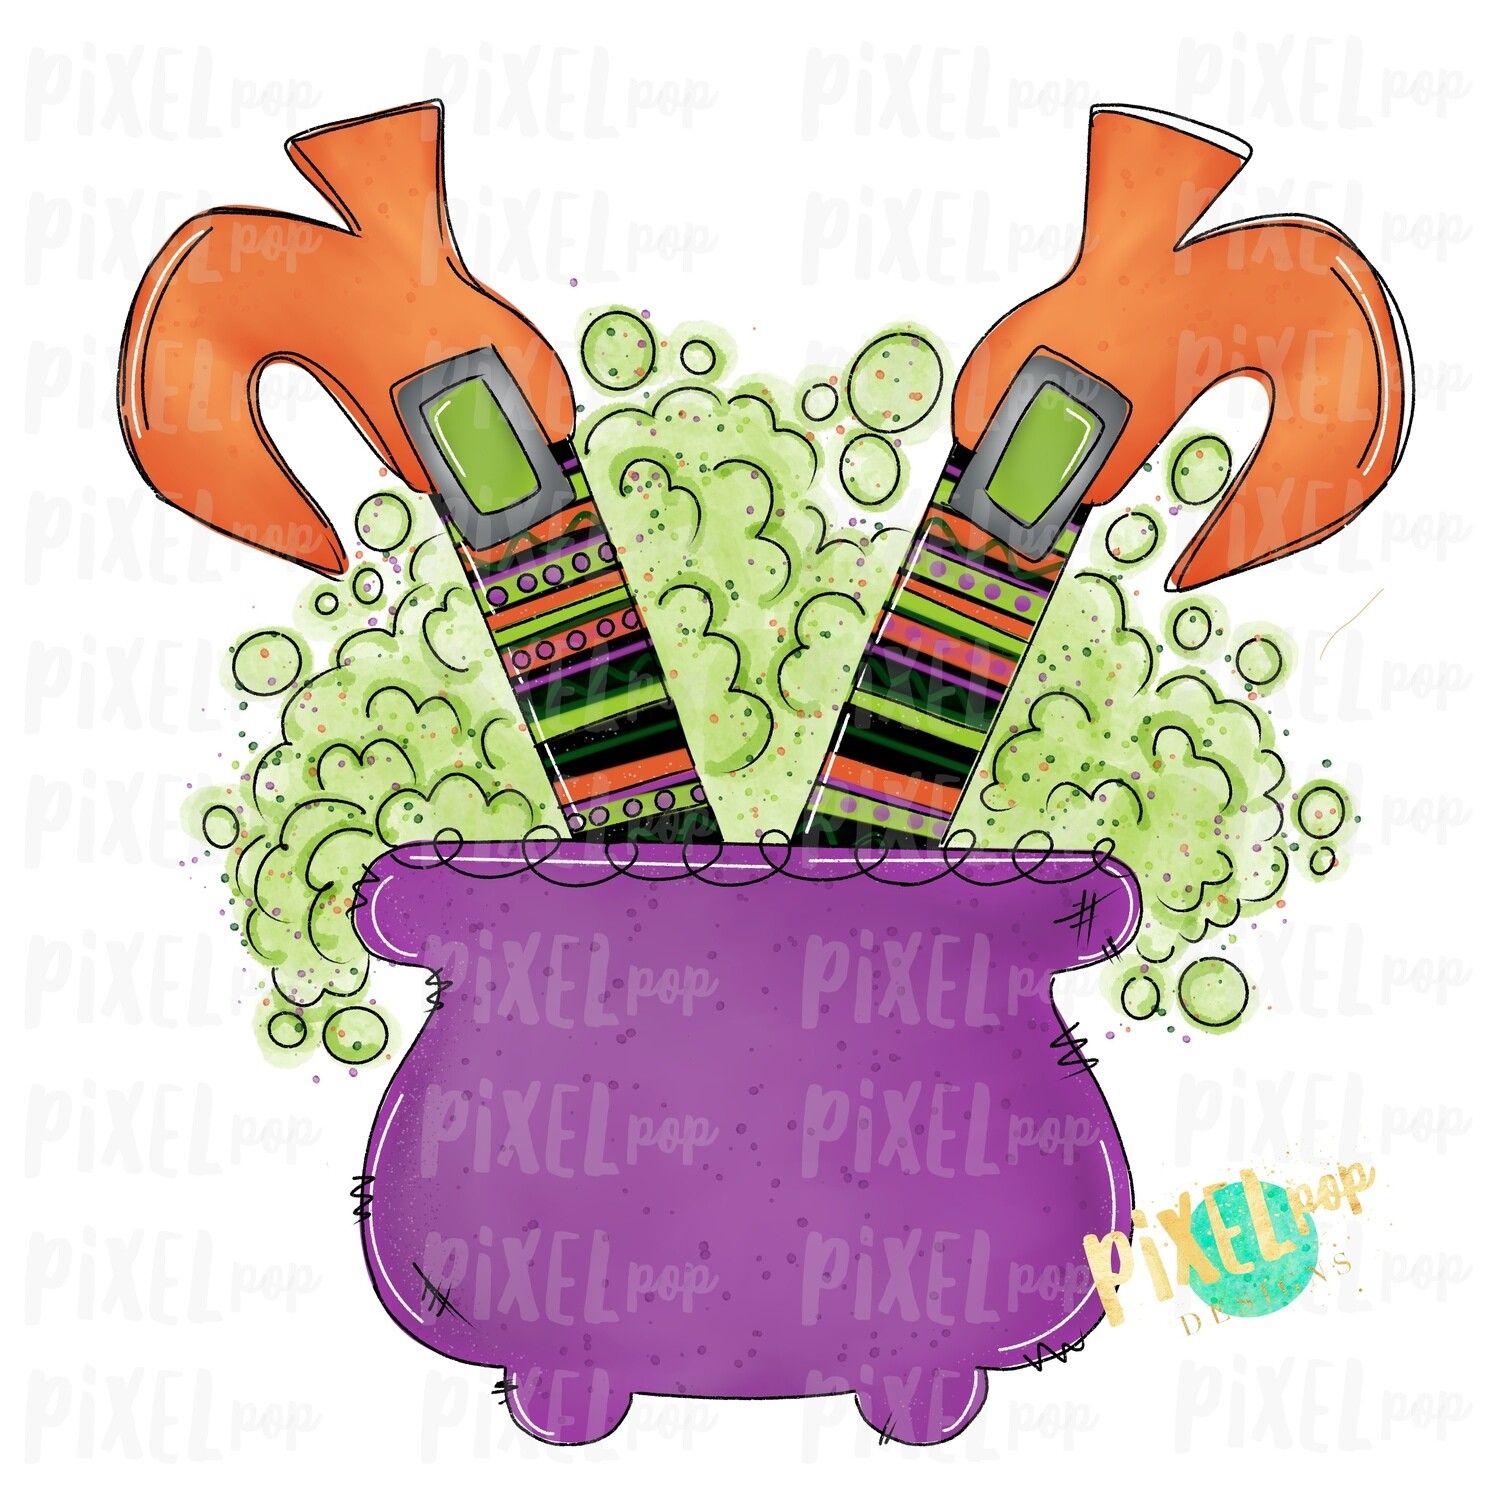 Cauldron Witch Feet Halloween Sublimation PNG | Hand Drawn Sublimation Design | Sublimation PNG | Digital Download | Printable Artwork | Art